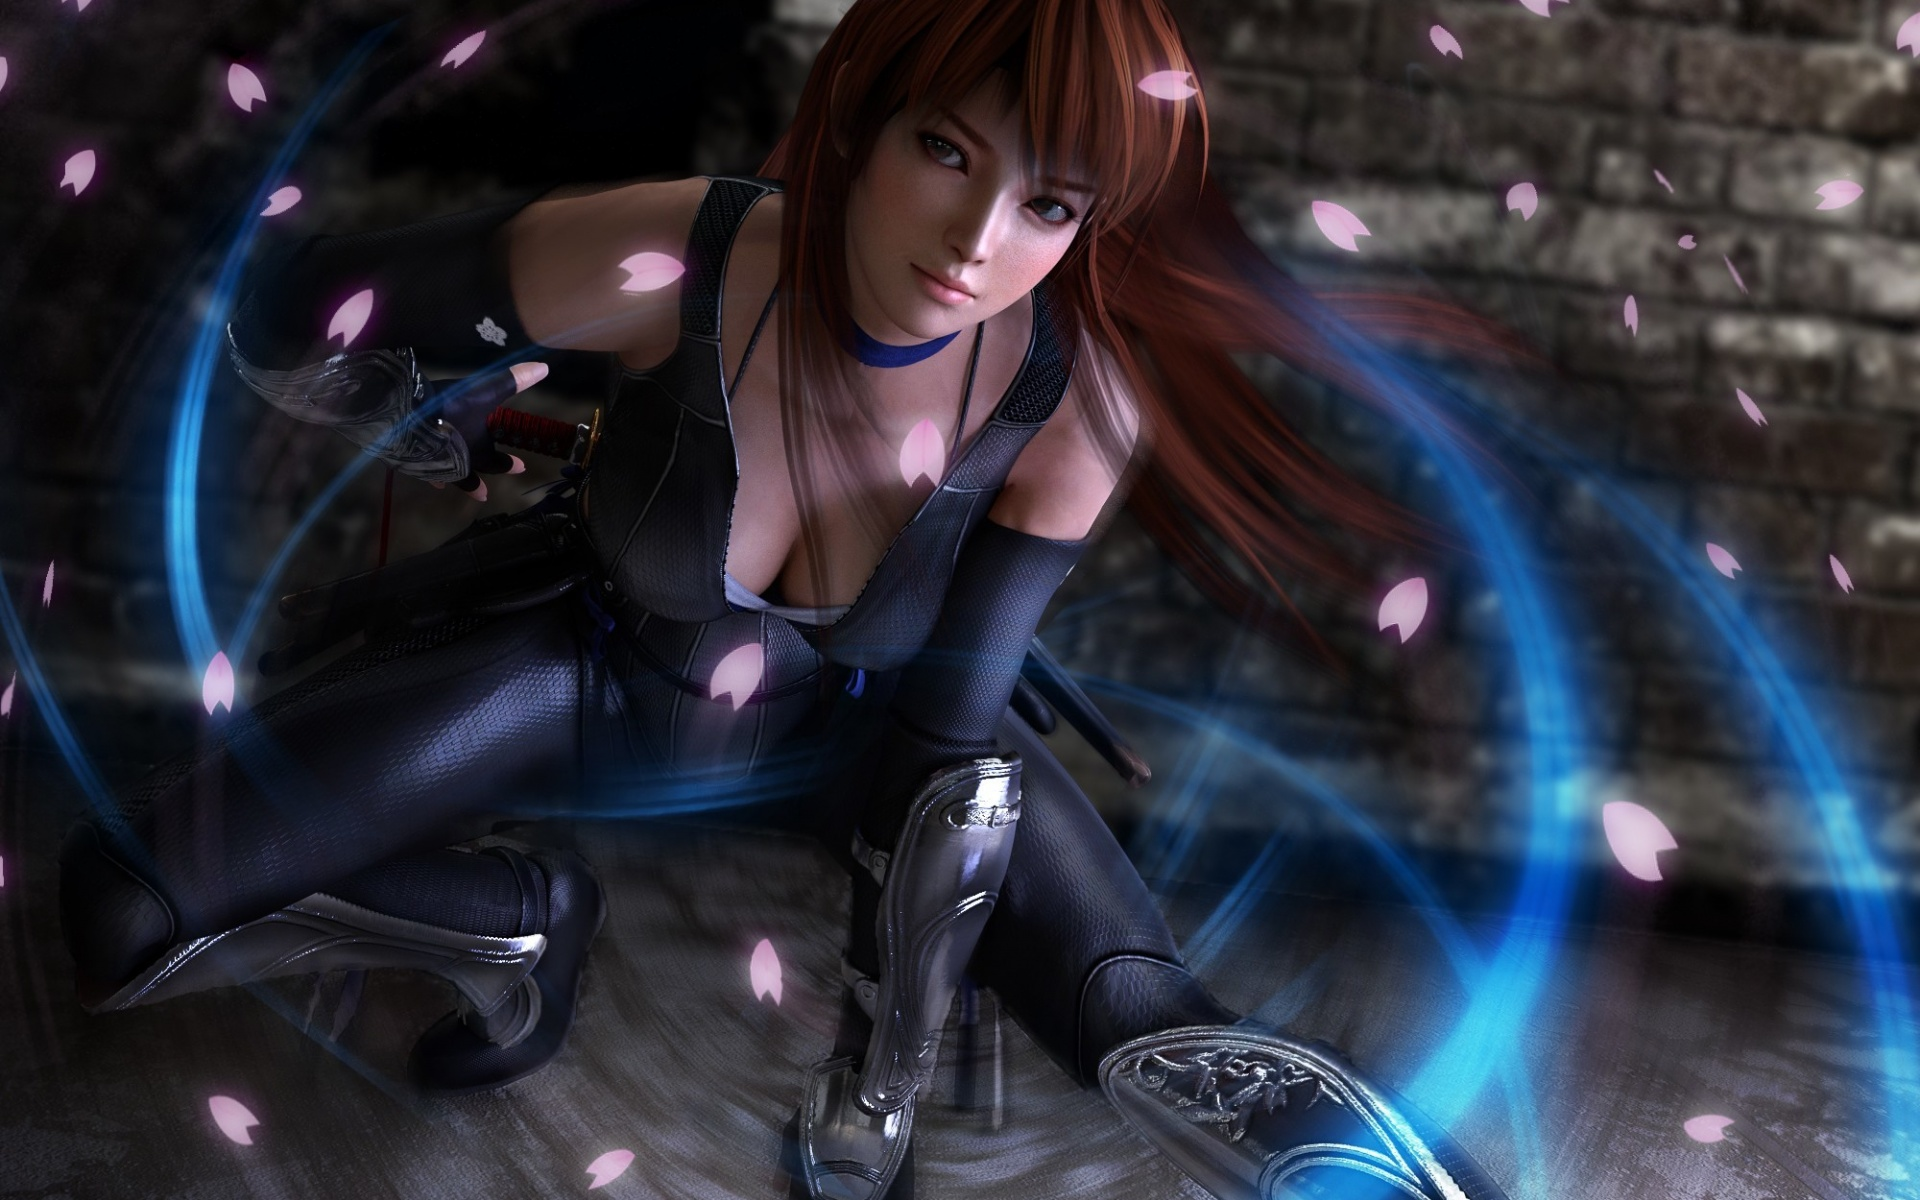 Dead Or Alive 5 Kasumi Ninja Girl HD Wallpaper 1920x1200